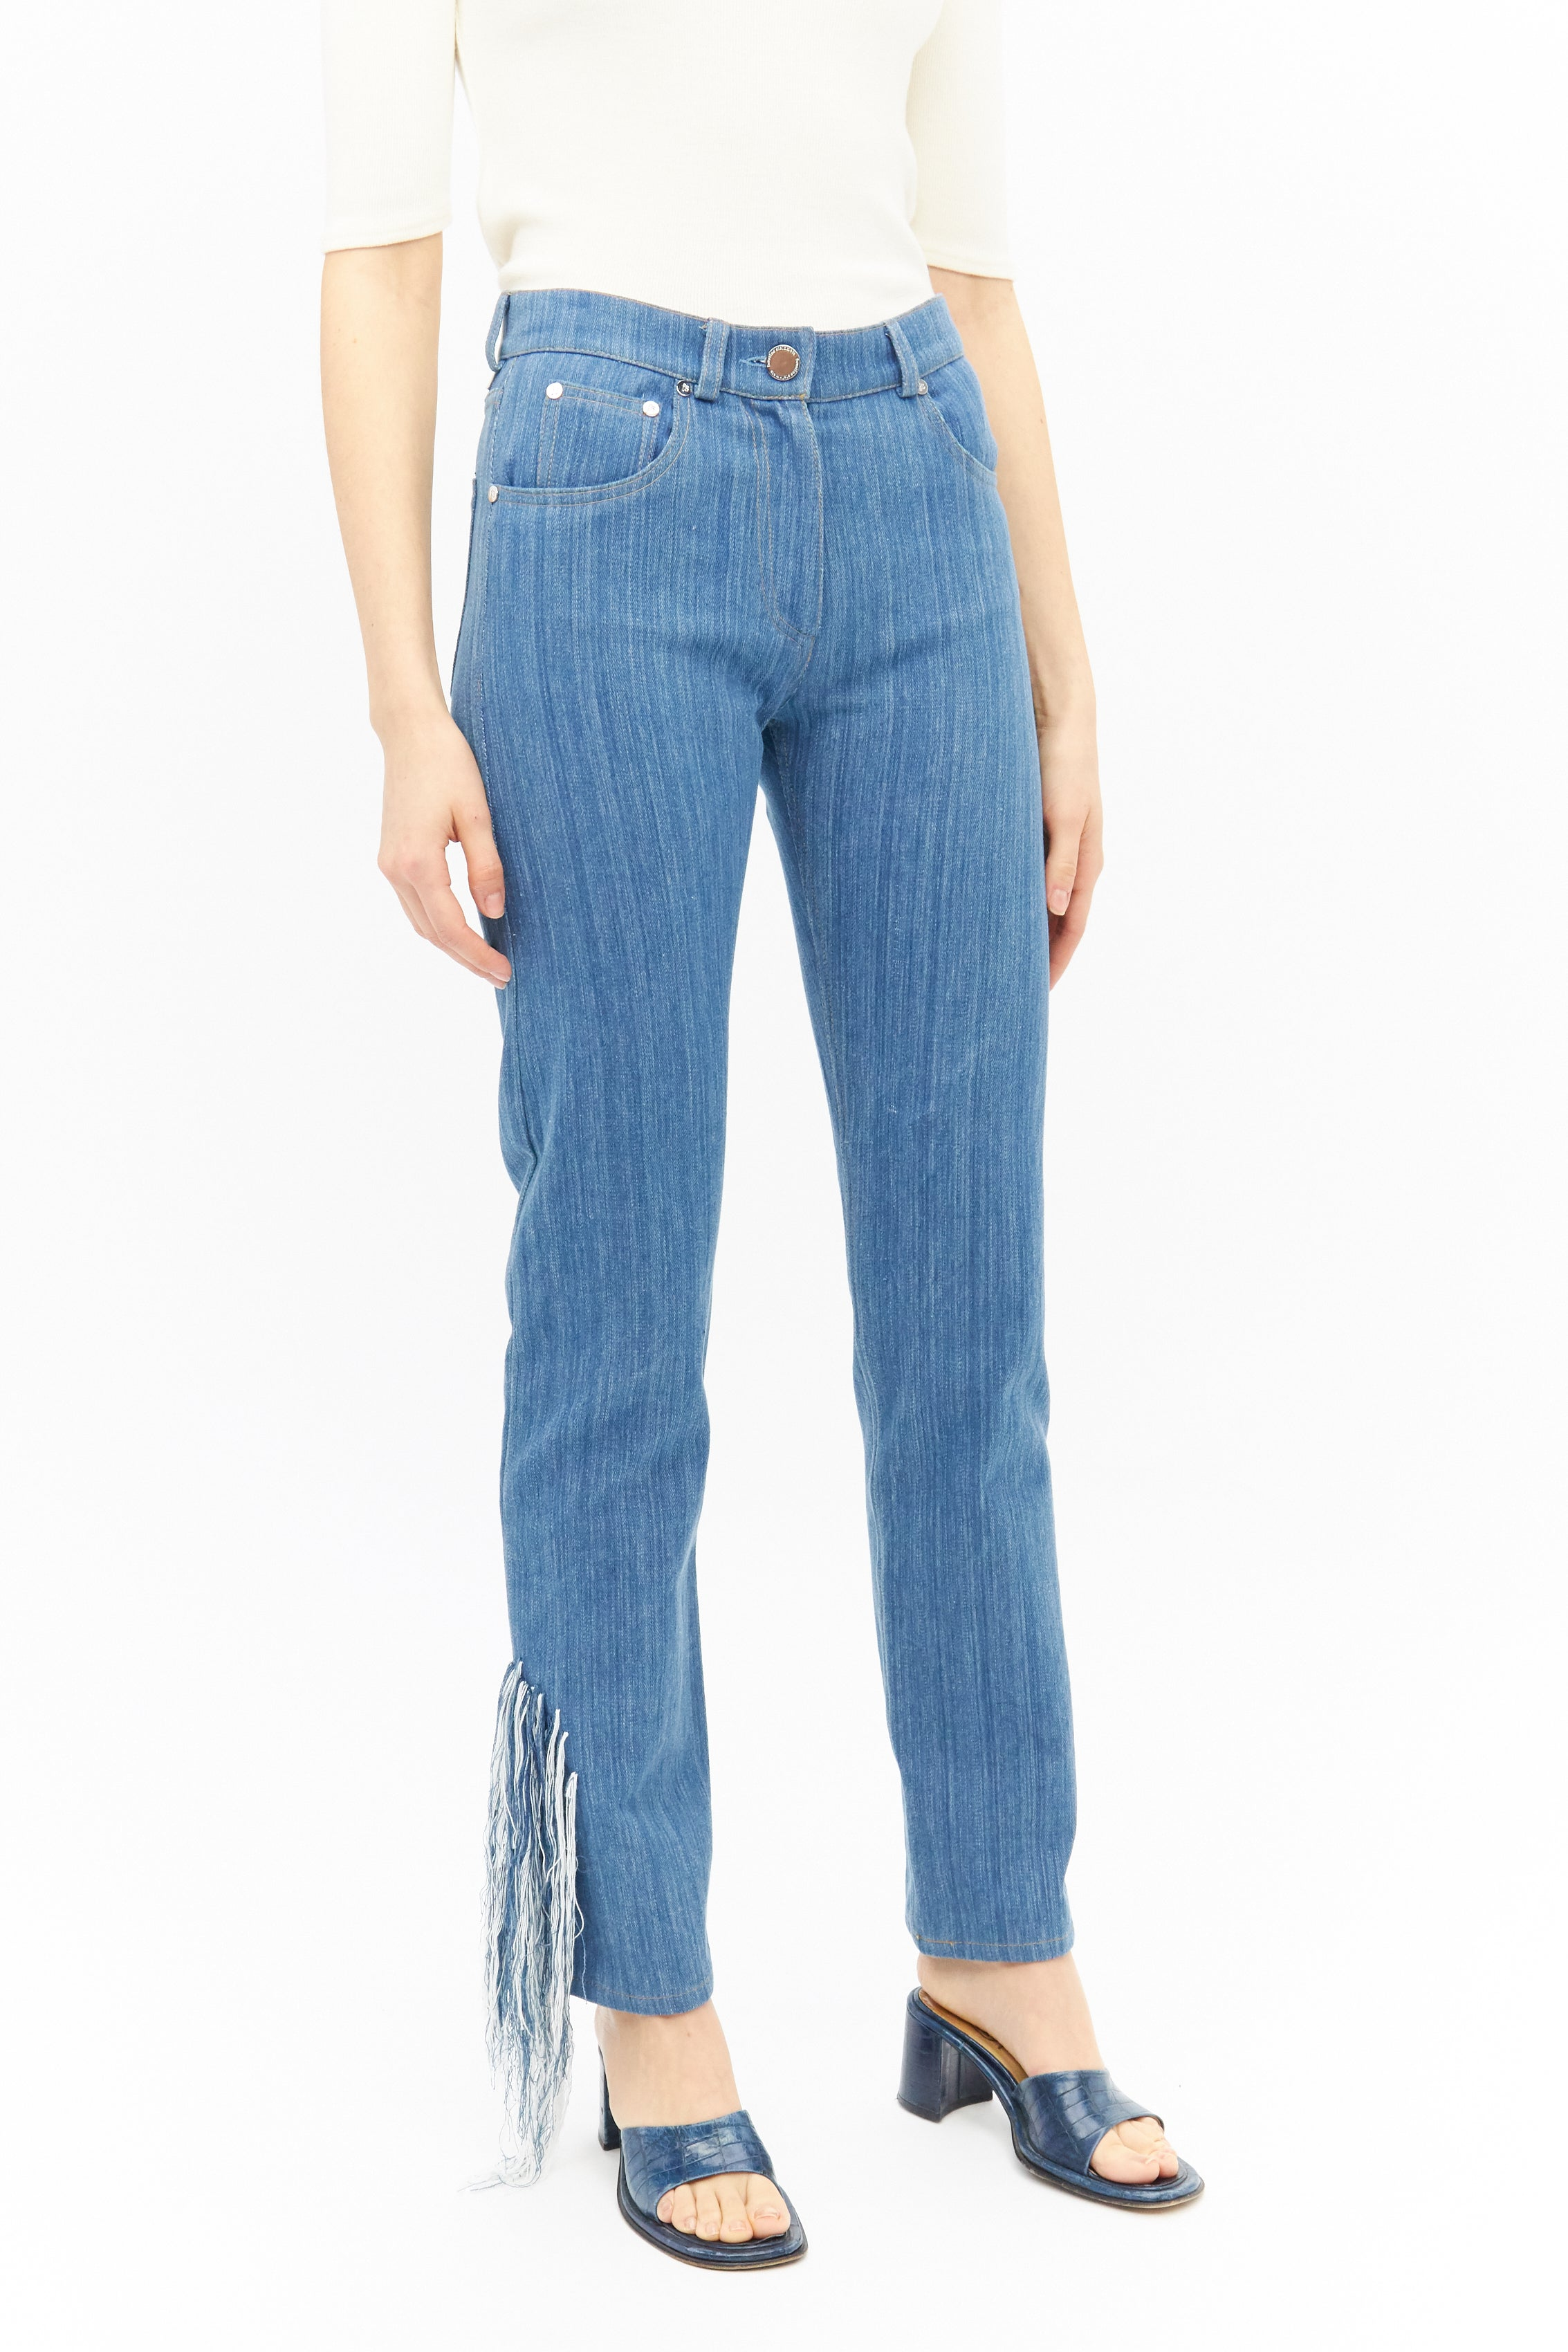 Handwoven Cotton Jeans